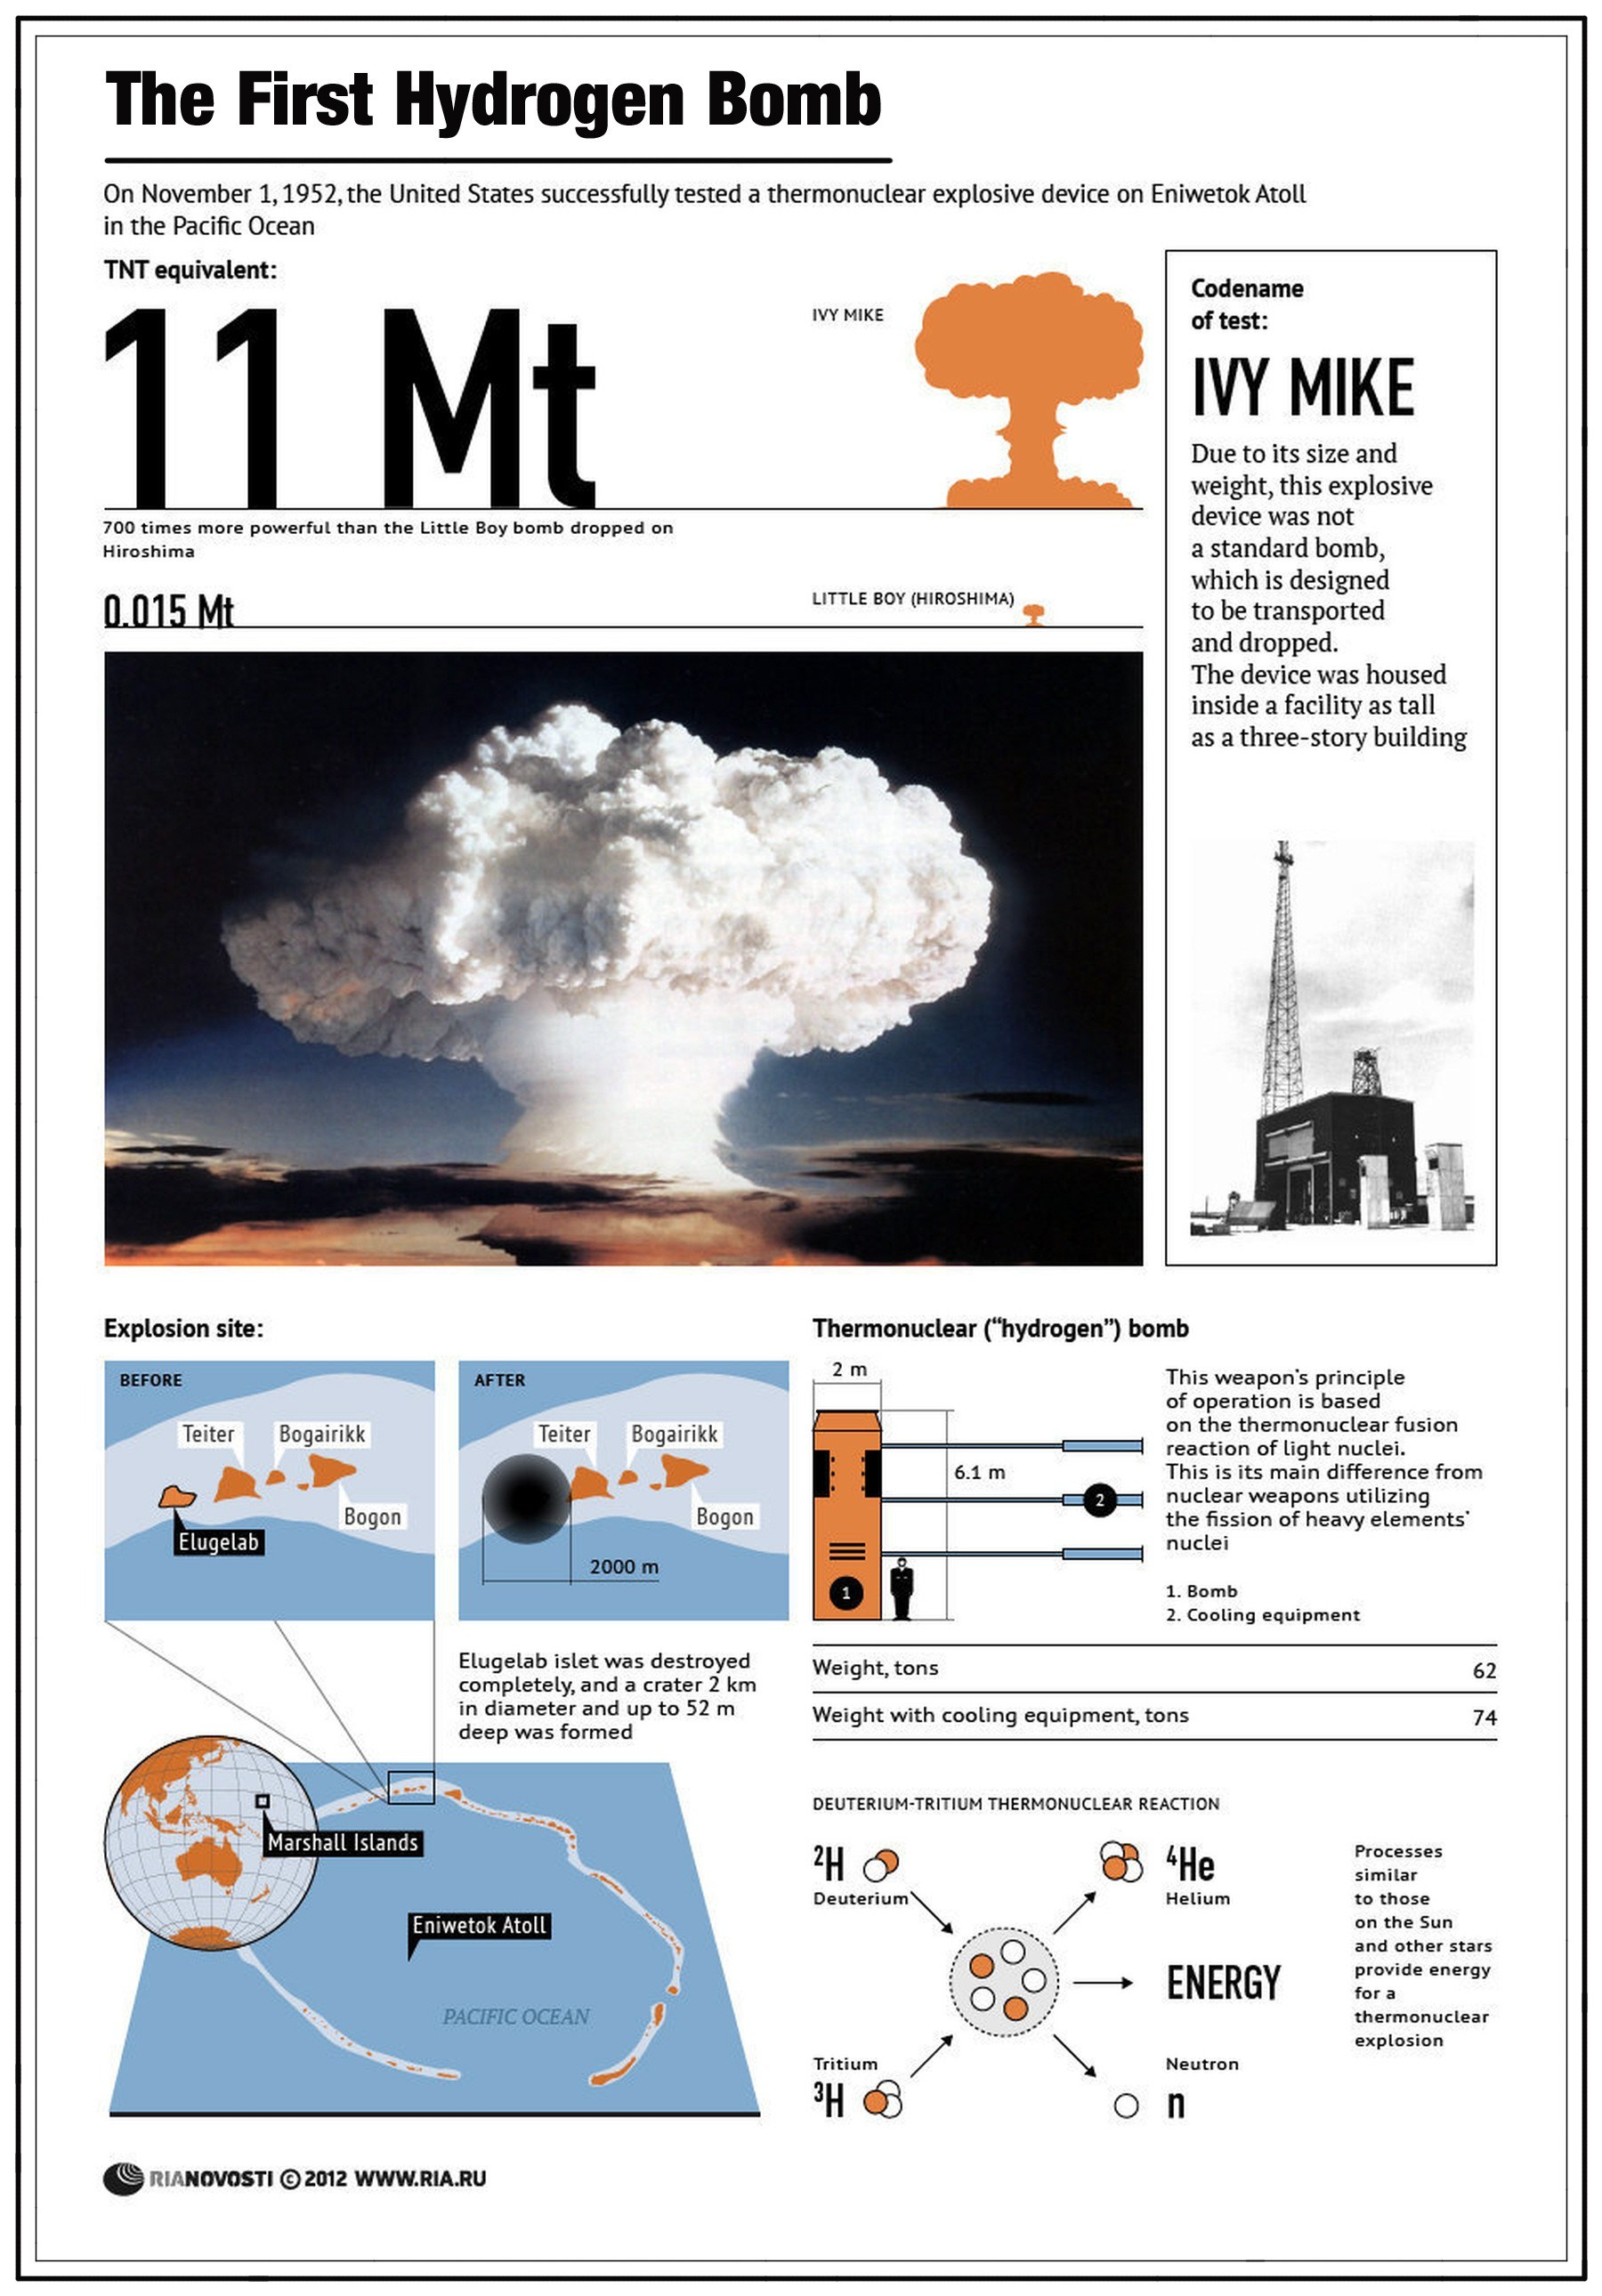 Facts about the First Hydrogen Bomb